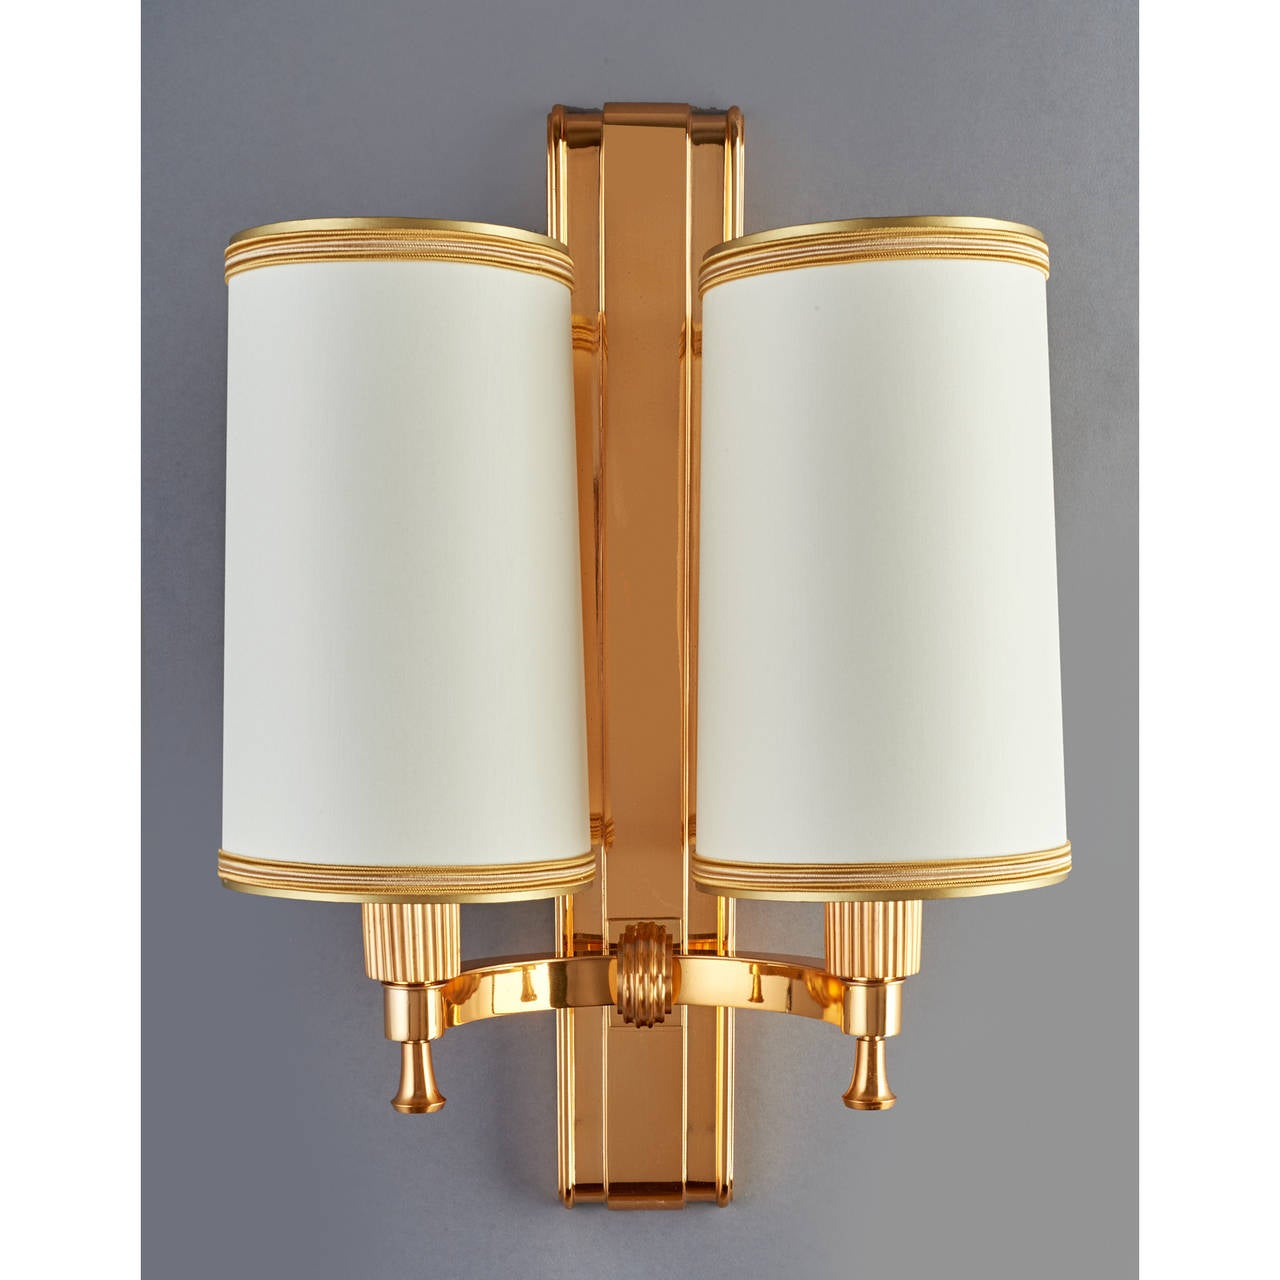 Elegant 1940's Bronze Sconces by Maxime Old 5